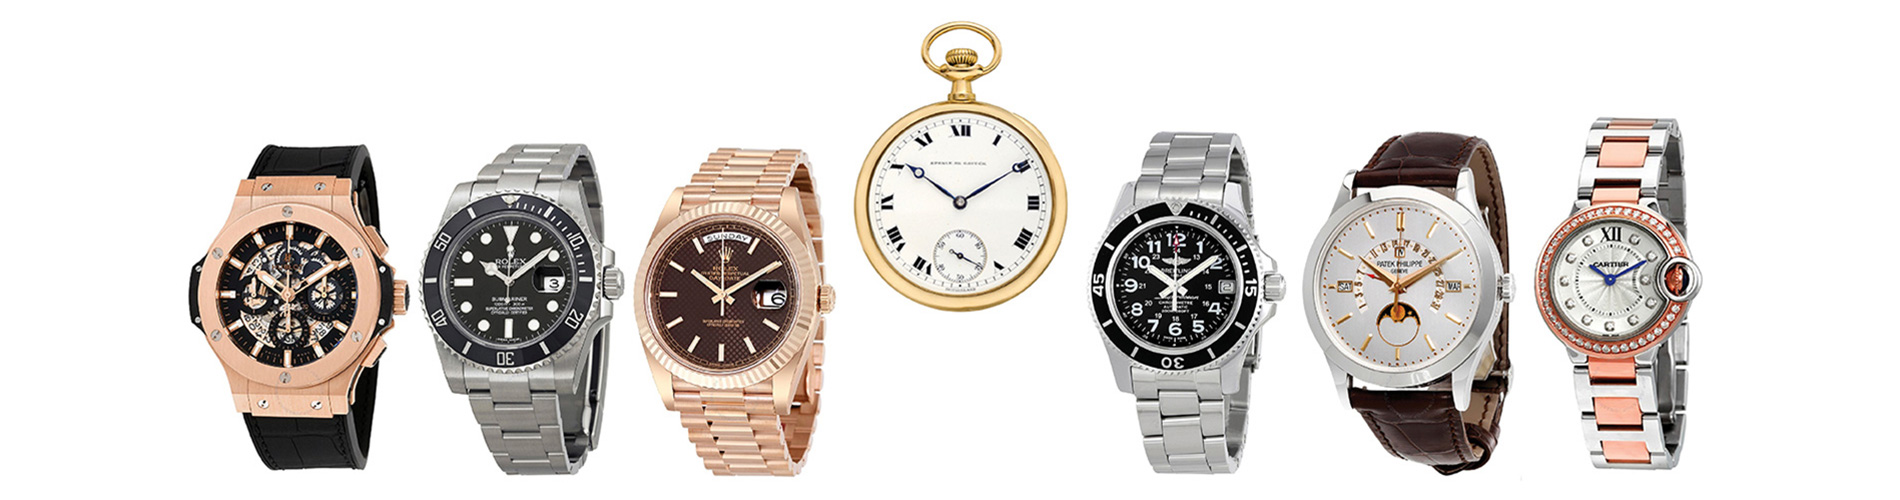 get cash for luxury watches and stopwatches